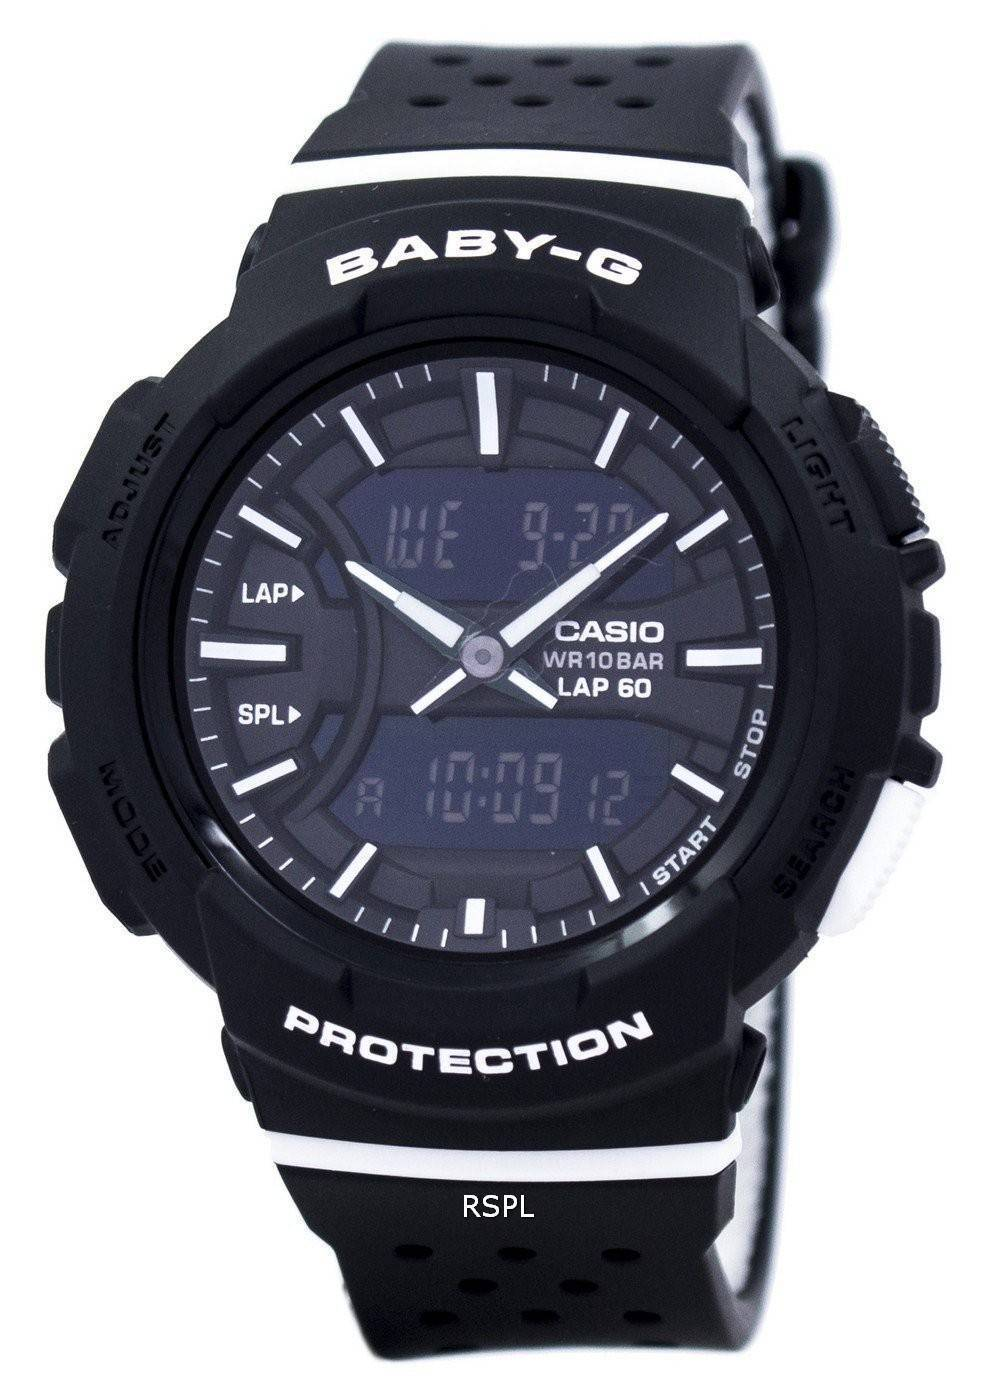 Tag Watches For Sale >> Casio Baby-G Shock Resistant Dual Time Analog Digital BGA-240-1A1 Women's Watch - CityWatches.co.nz